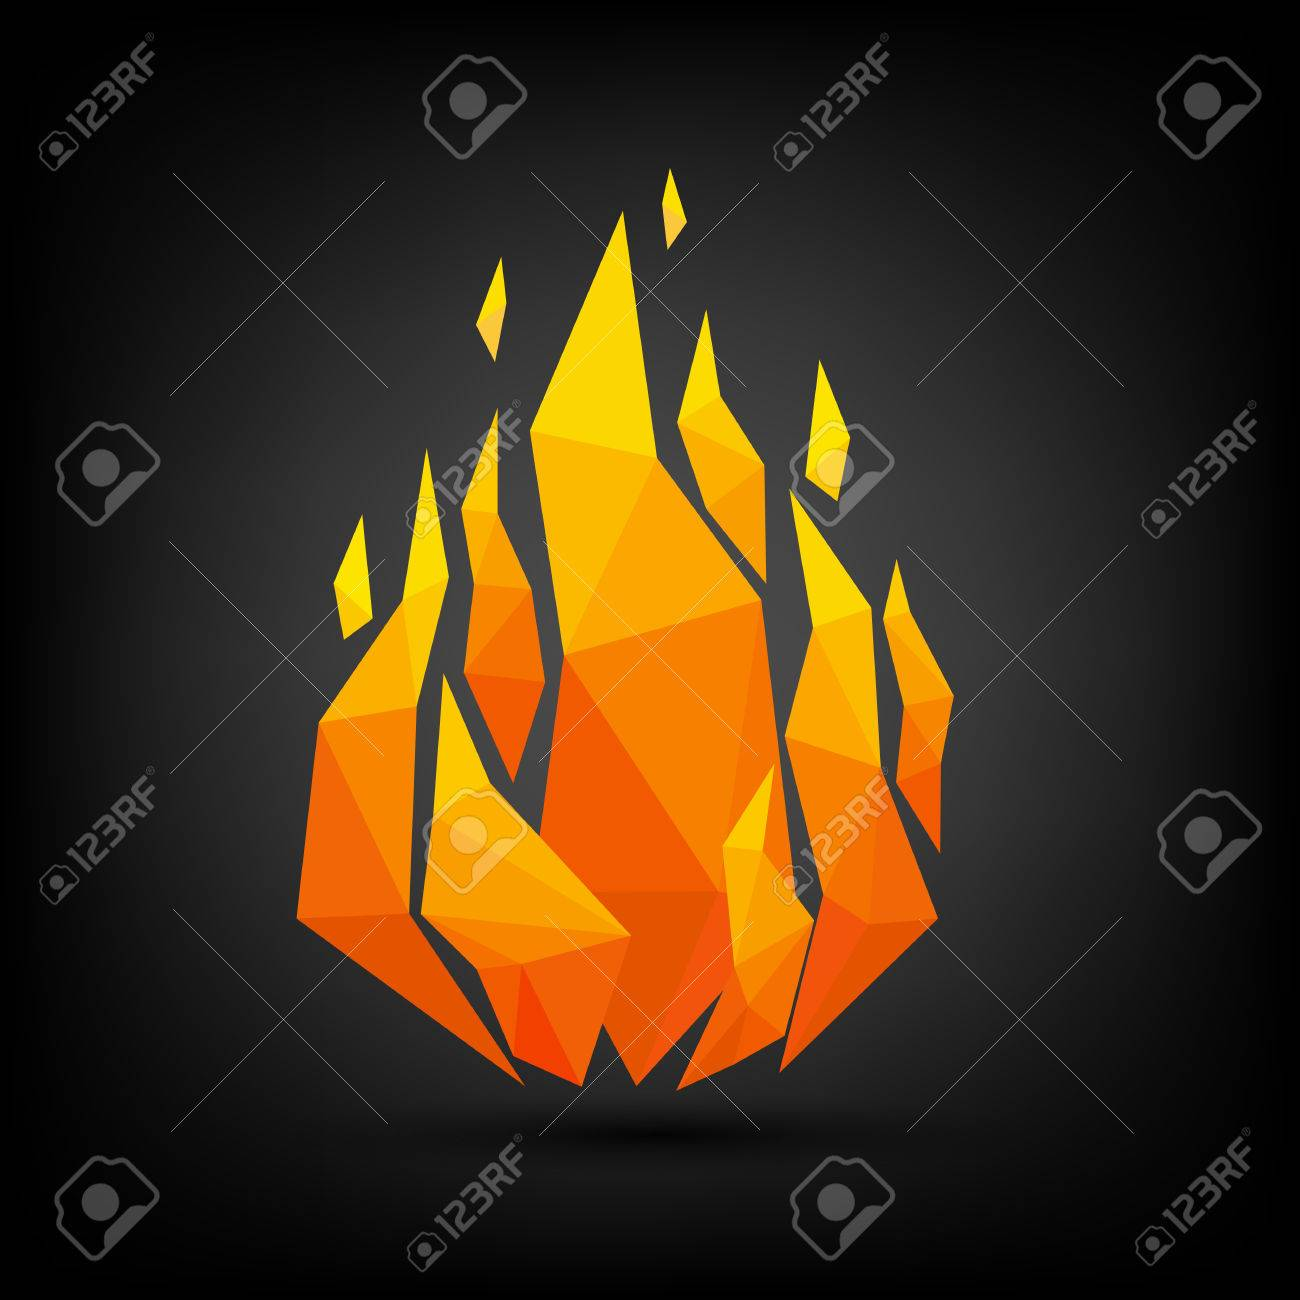 abstract flame triangle geometric